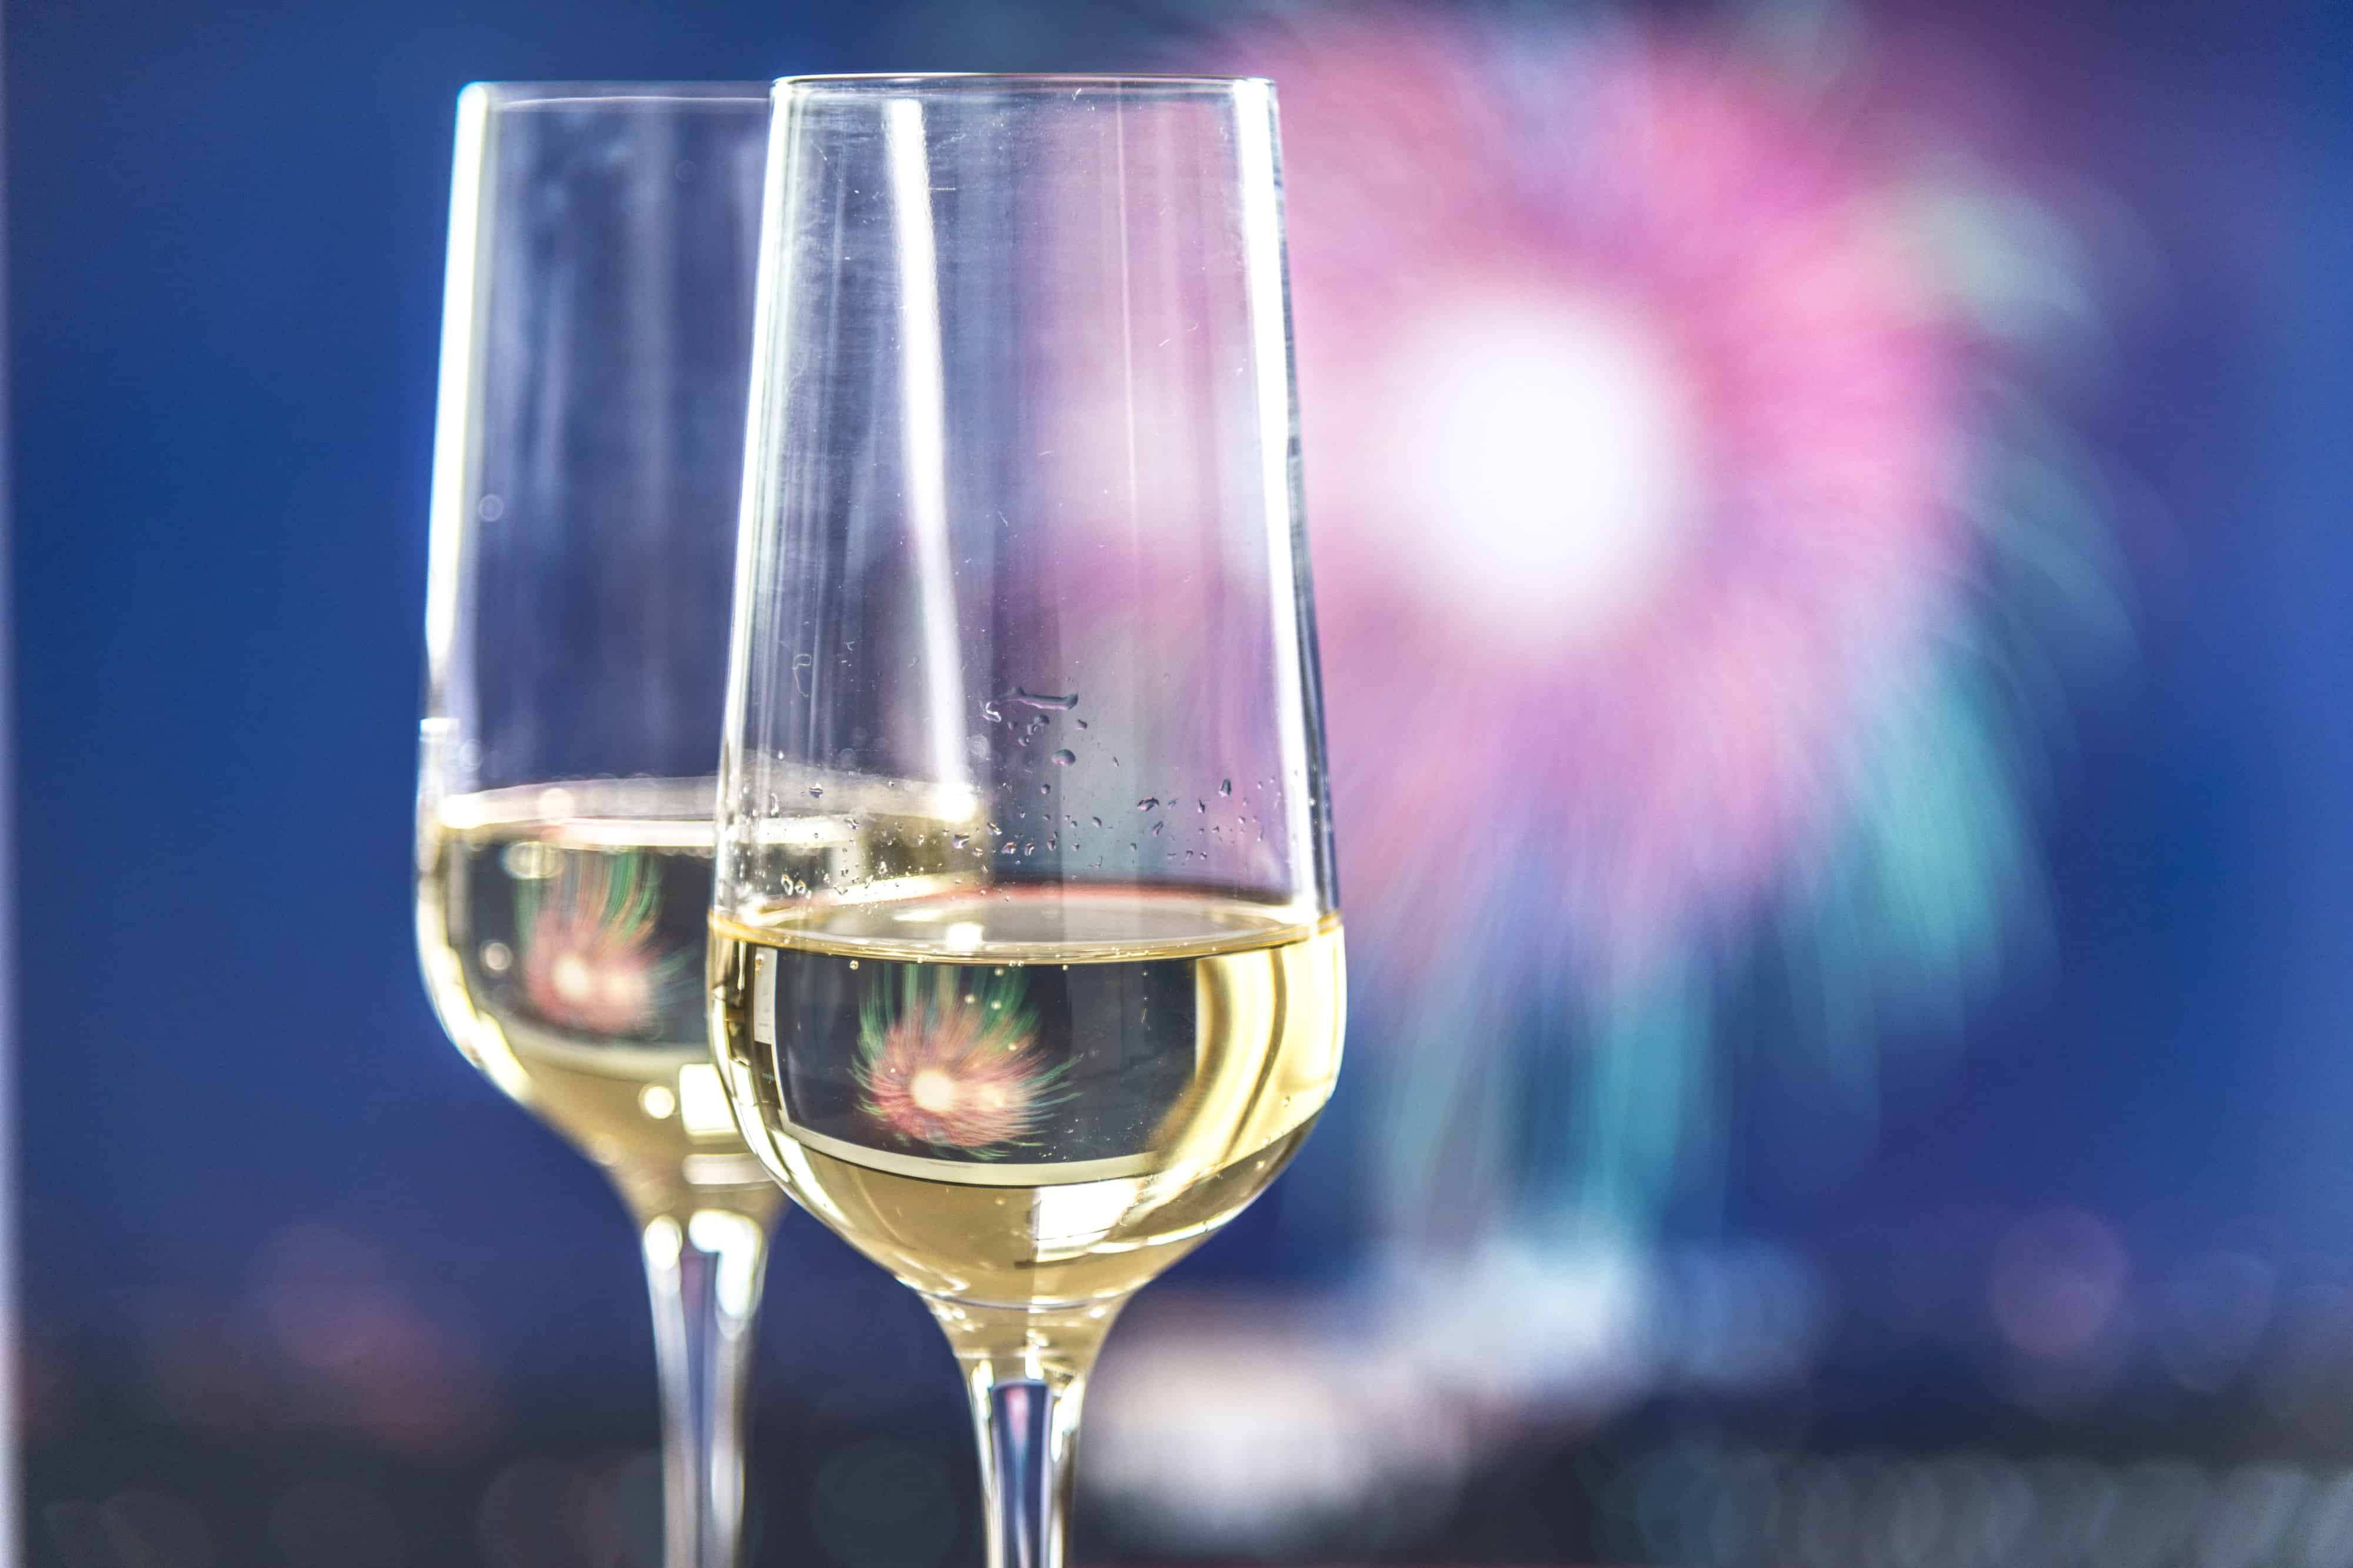 Hosting a New Year's Eve wine tasting party can be a great experience